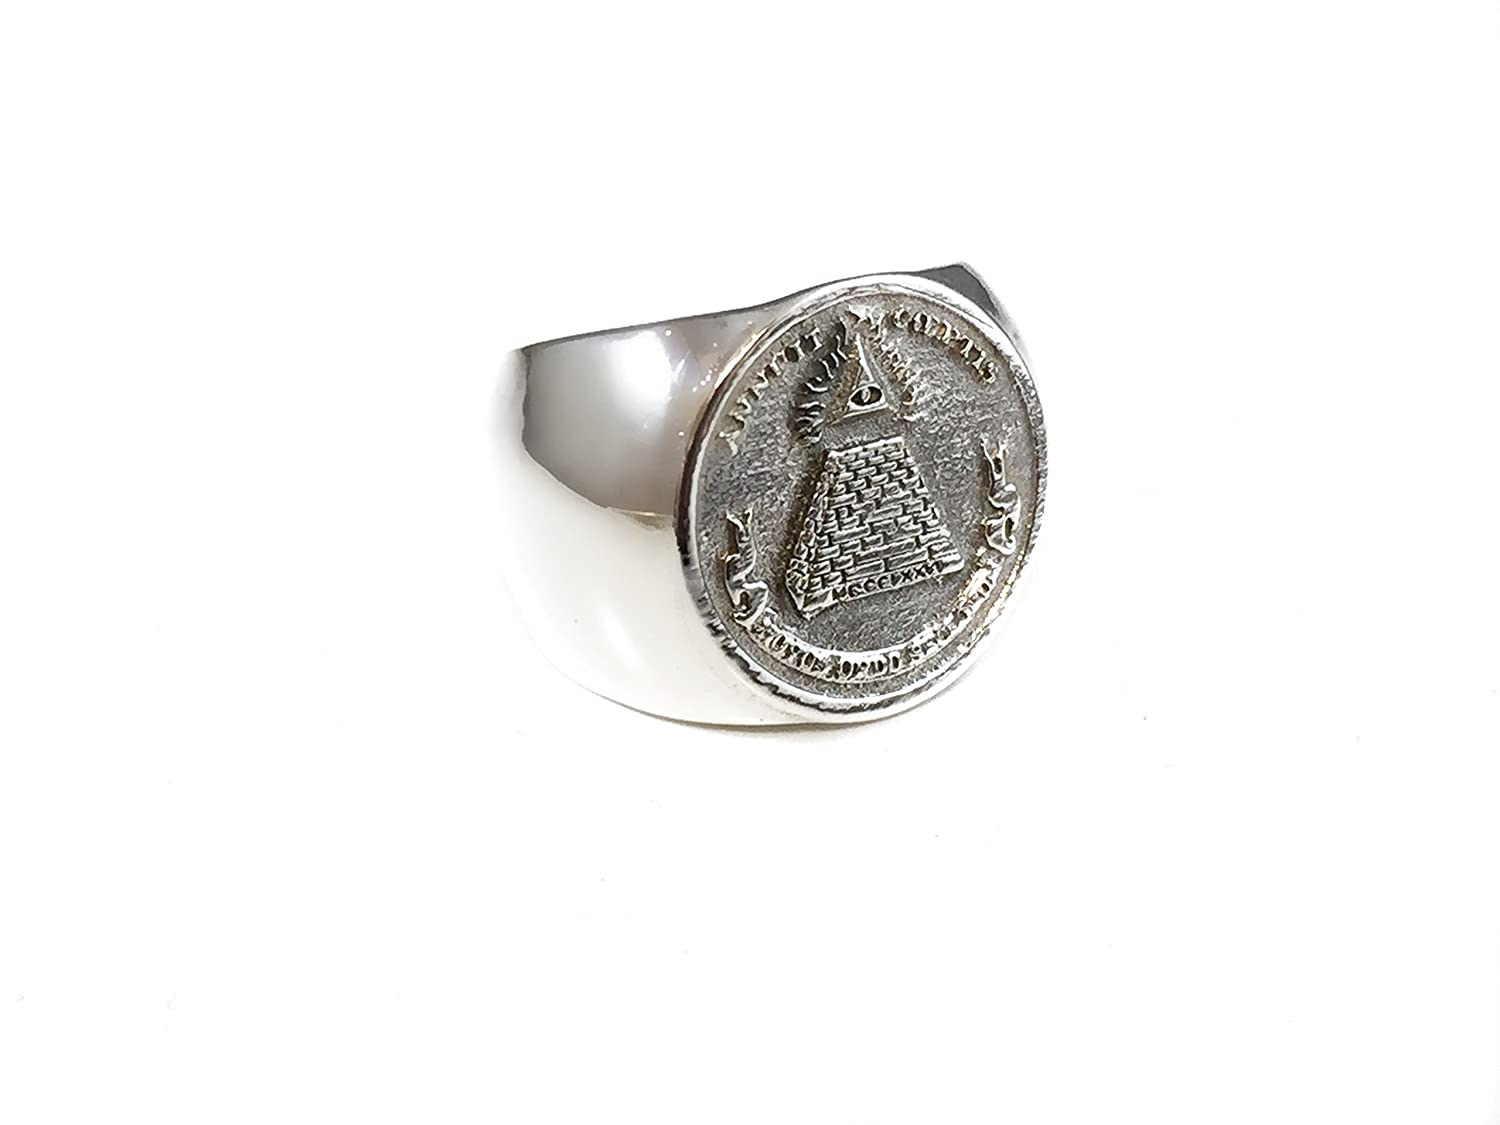 Amazon com: Sterling Silver 925 Masonic Annuit Coeptis